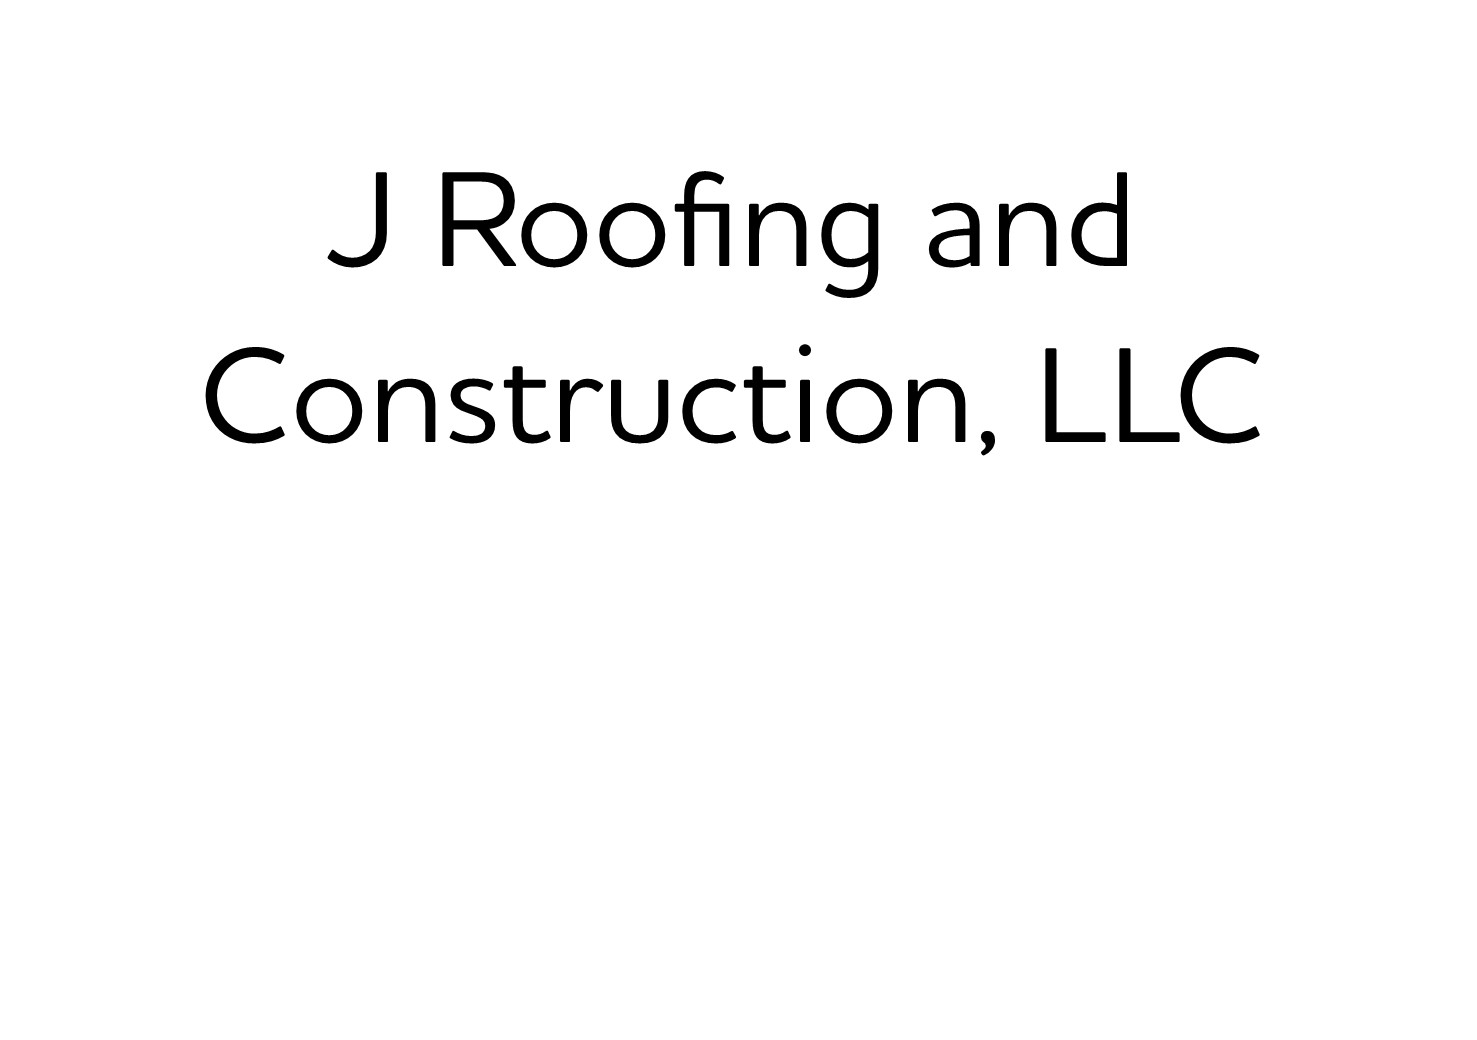 510. J Roofing and Construction, LLC (Bronze)